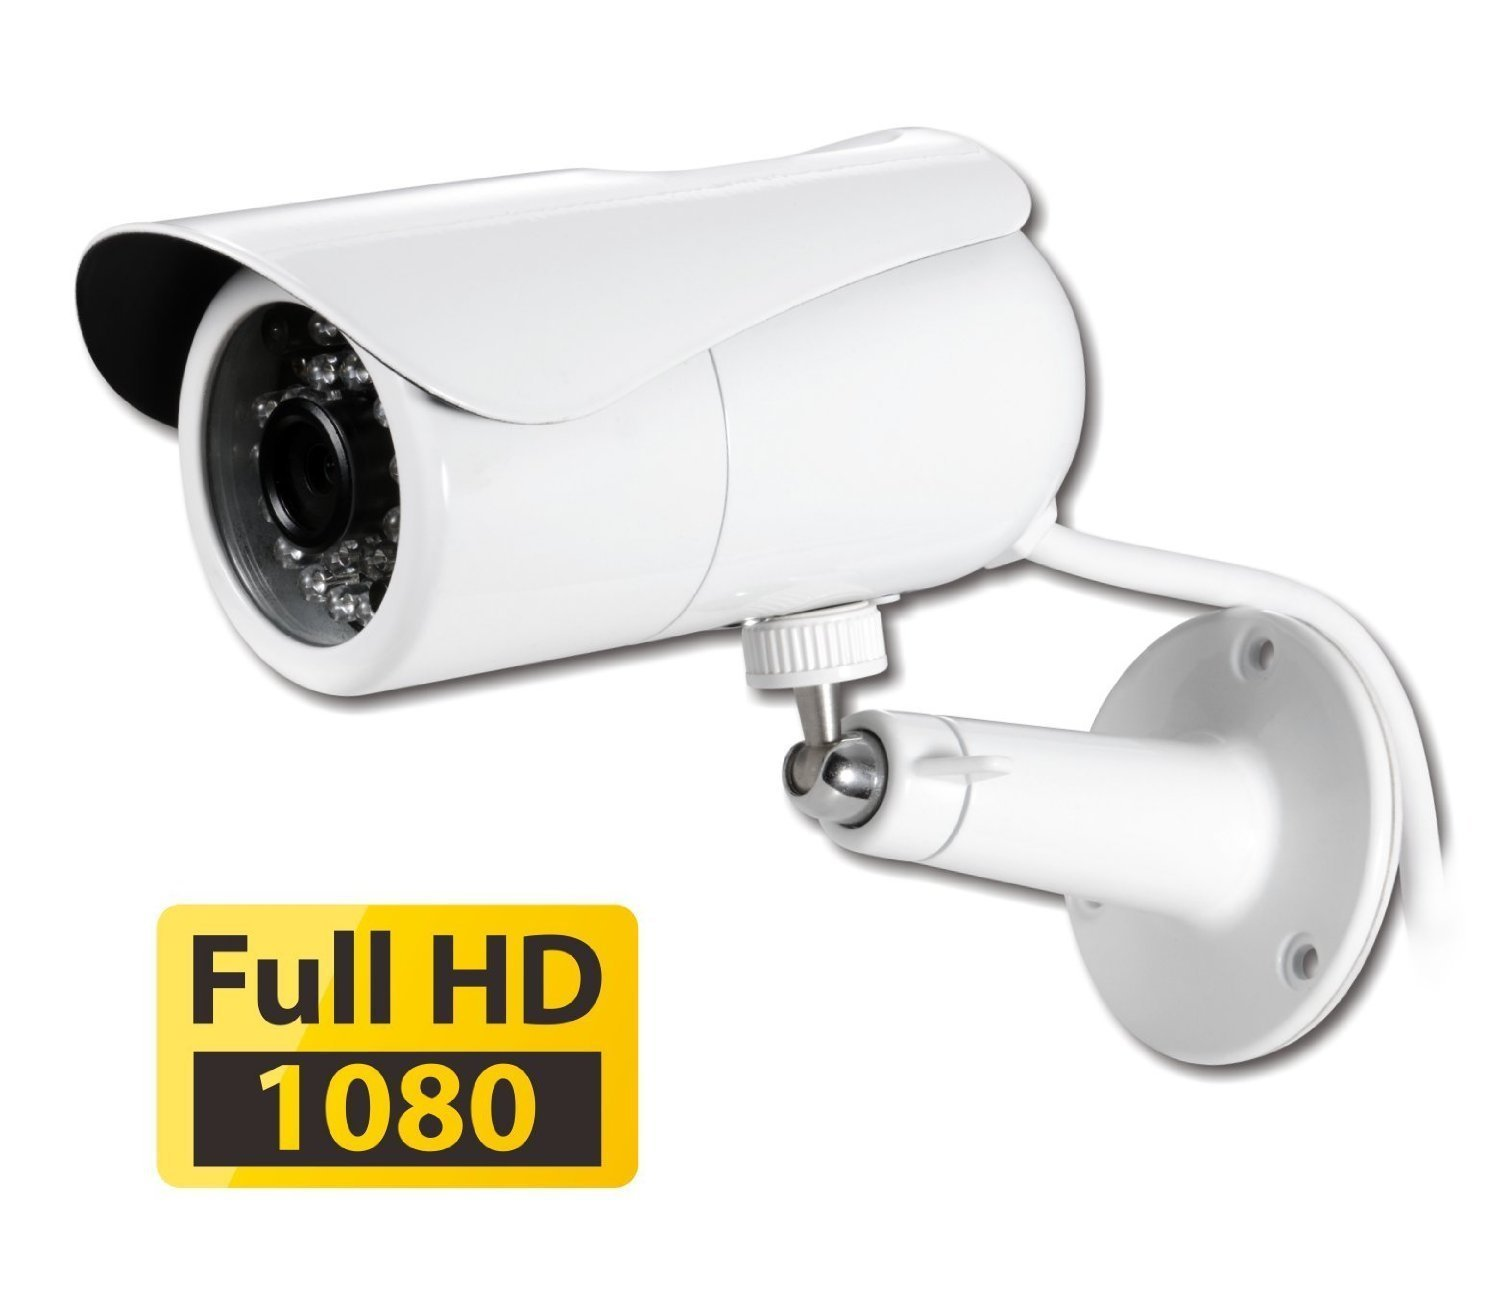 PHYLINK Bullet HD1080, Waterproof Outdoor Home Security Network IP Camera, True Day Night Vision, HD 1080P High Definition, Wireless WiFi, PoE, Motion Detection triggered Email Alert